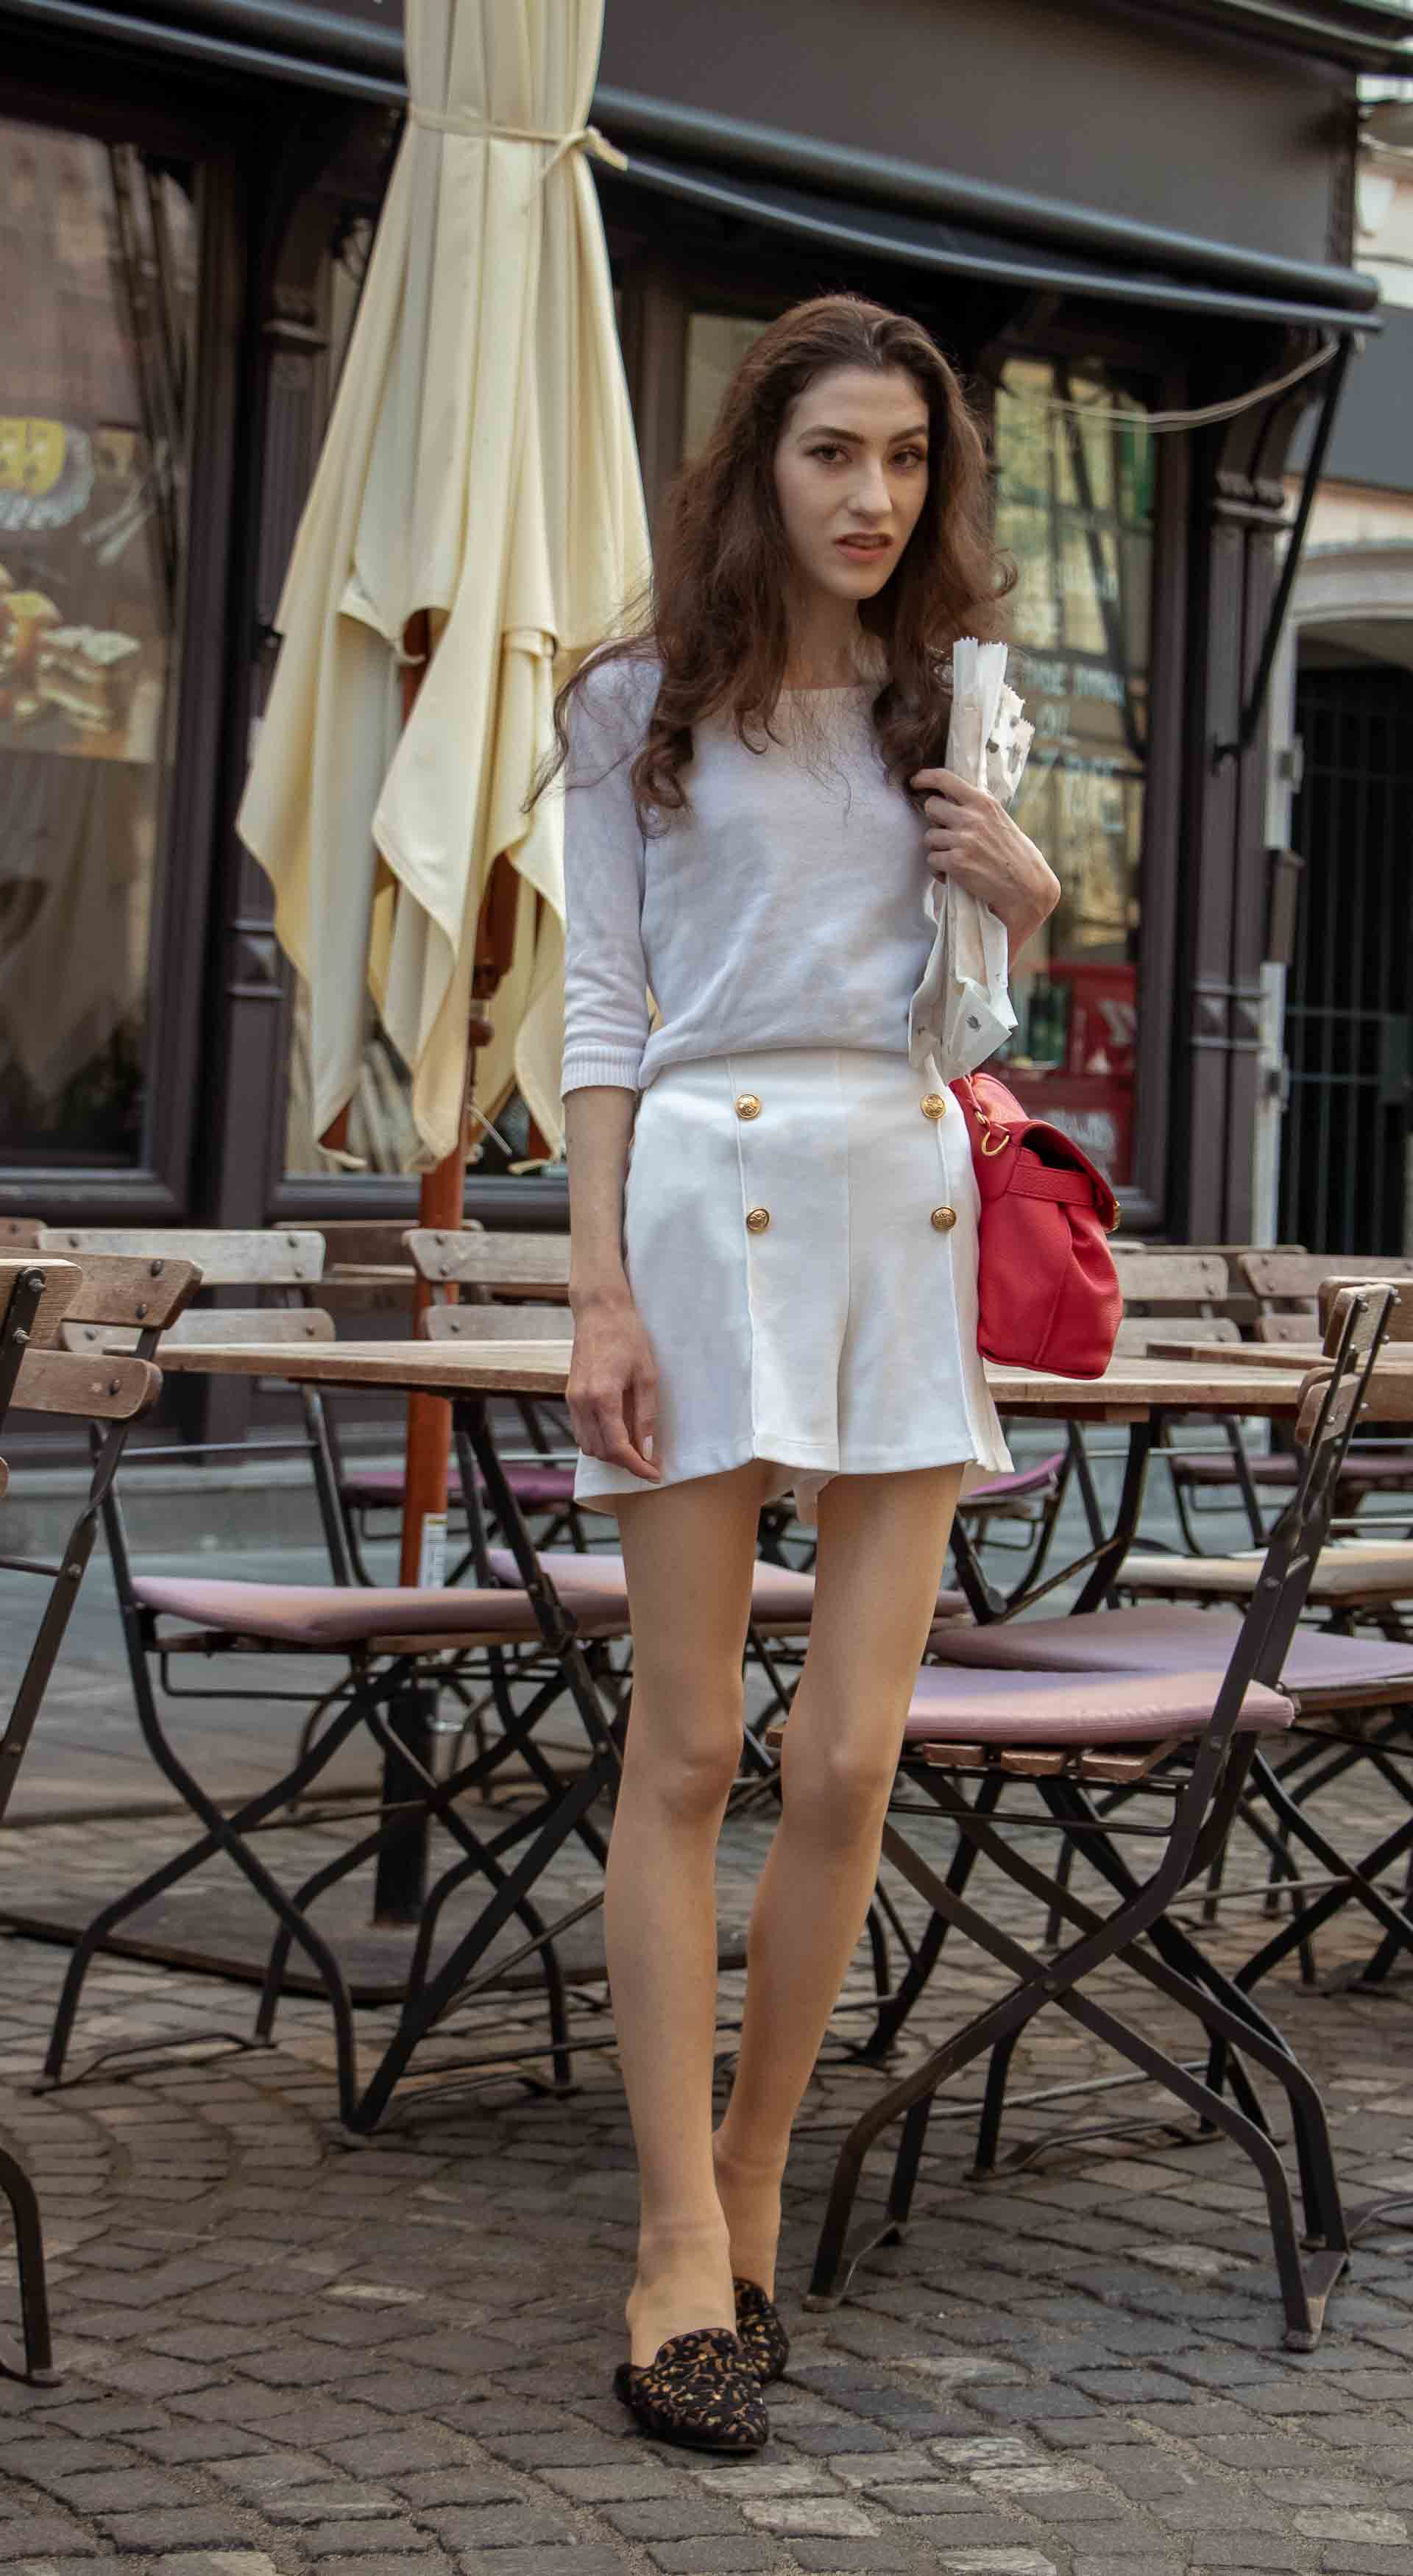 Beautiful Slovenian Fashion Blogger Veronika Lipar of Brunette from Wall wearing all in white outfit, a white sweater, white tailored shorts, black flat slipper mules, pink top handle bag, a paper bag during heatwave in Ljubljana